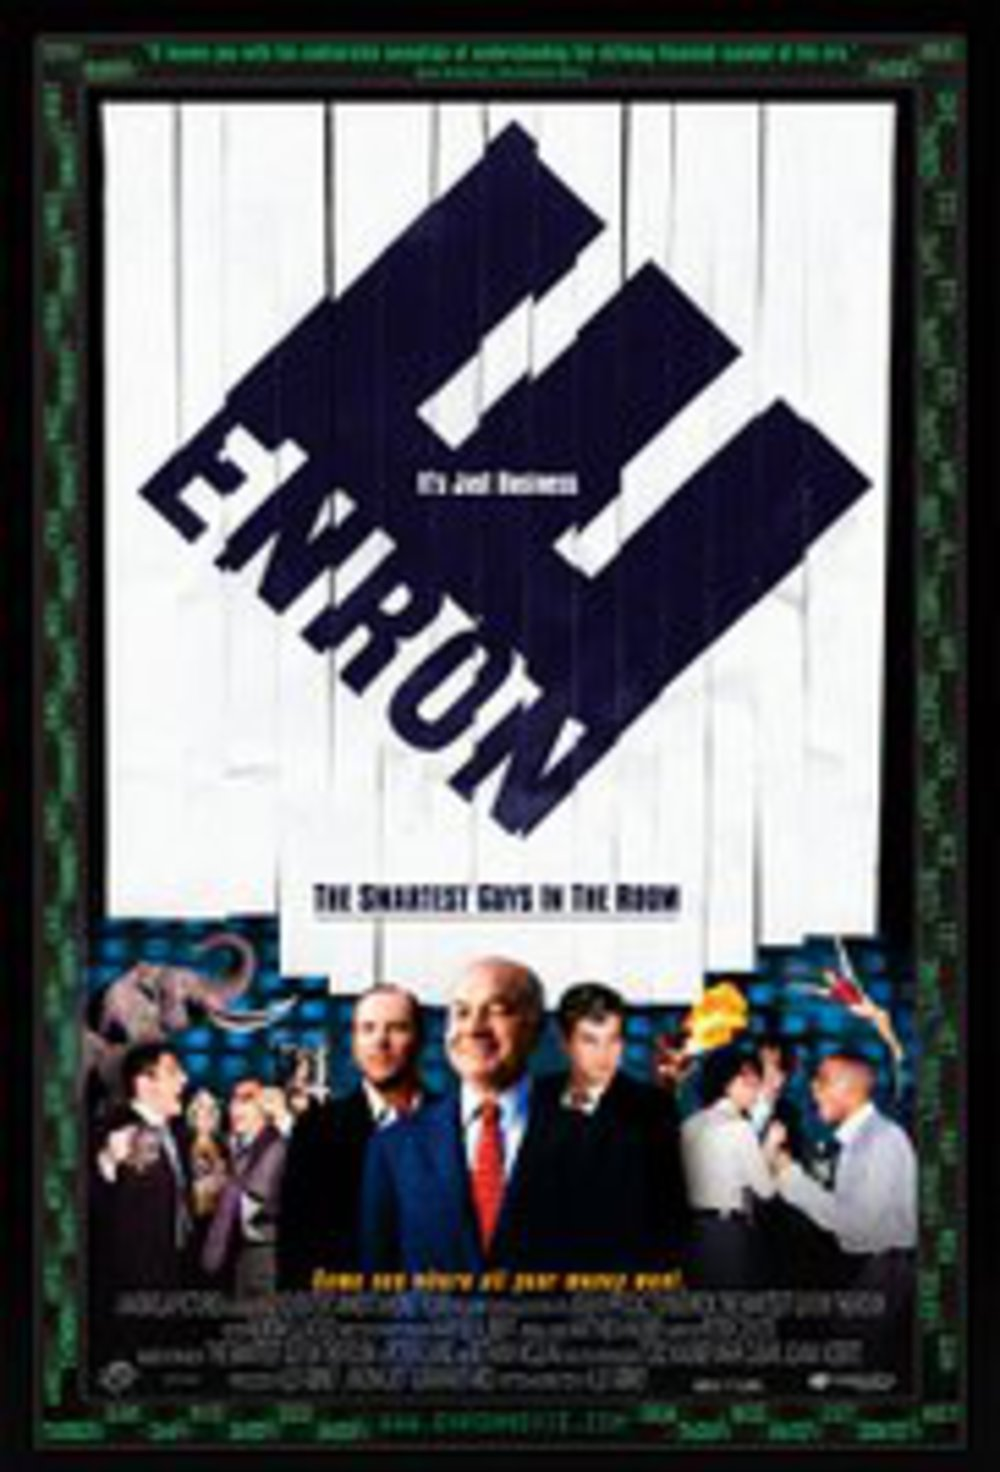 Enron: The Smartest Guys in the Room (2005) - IMDb